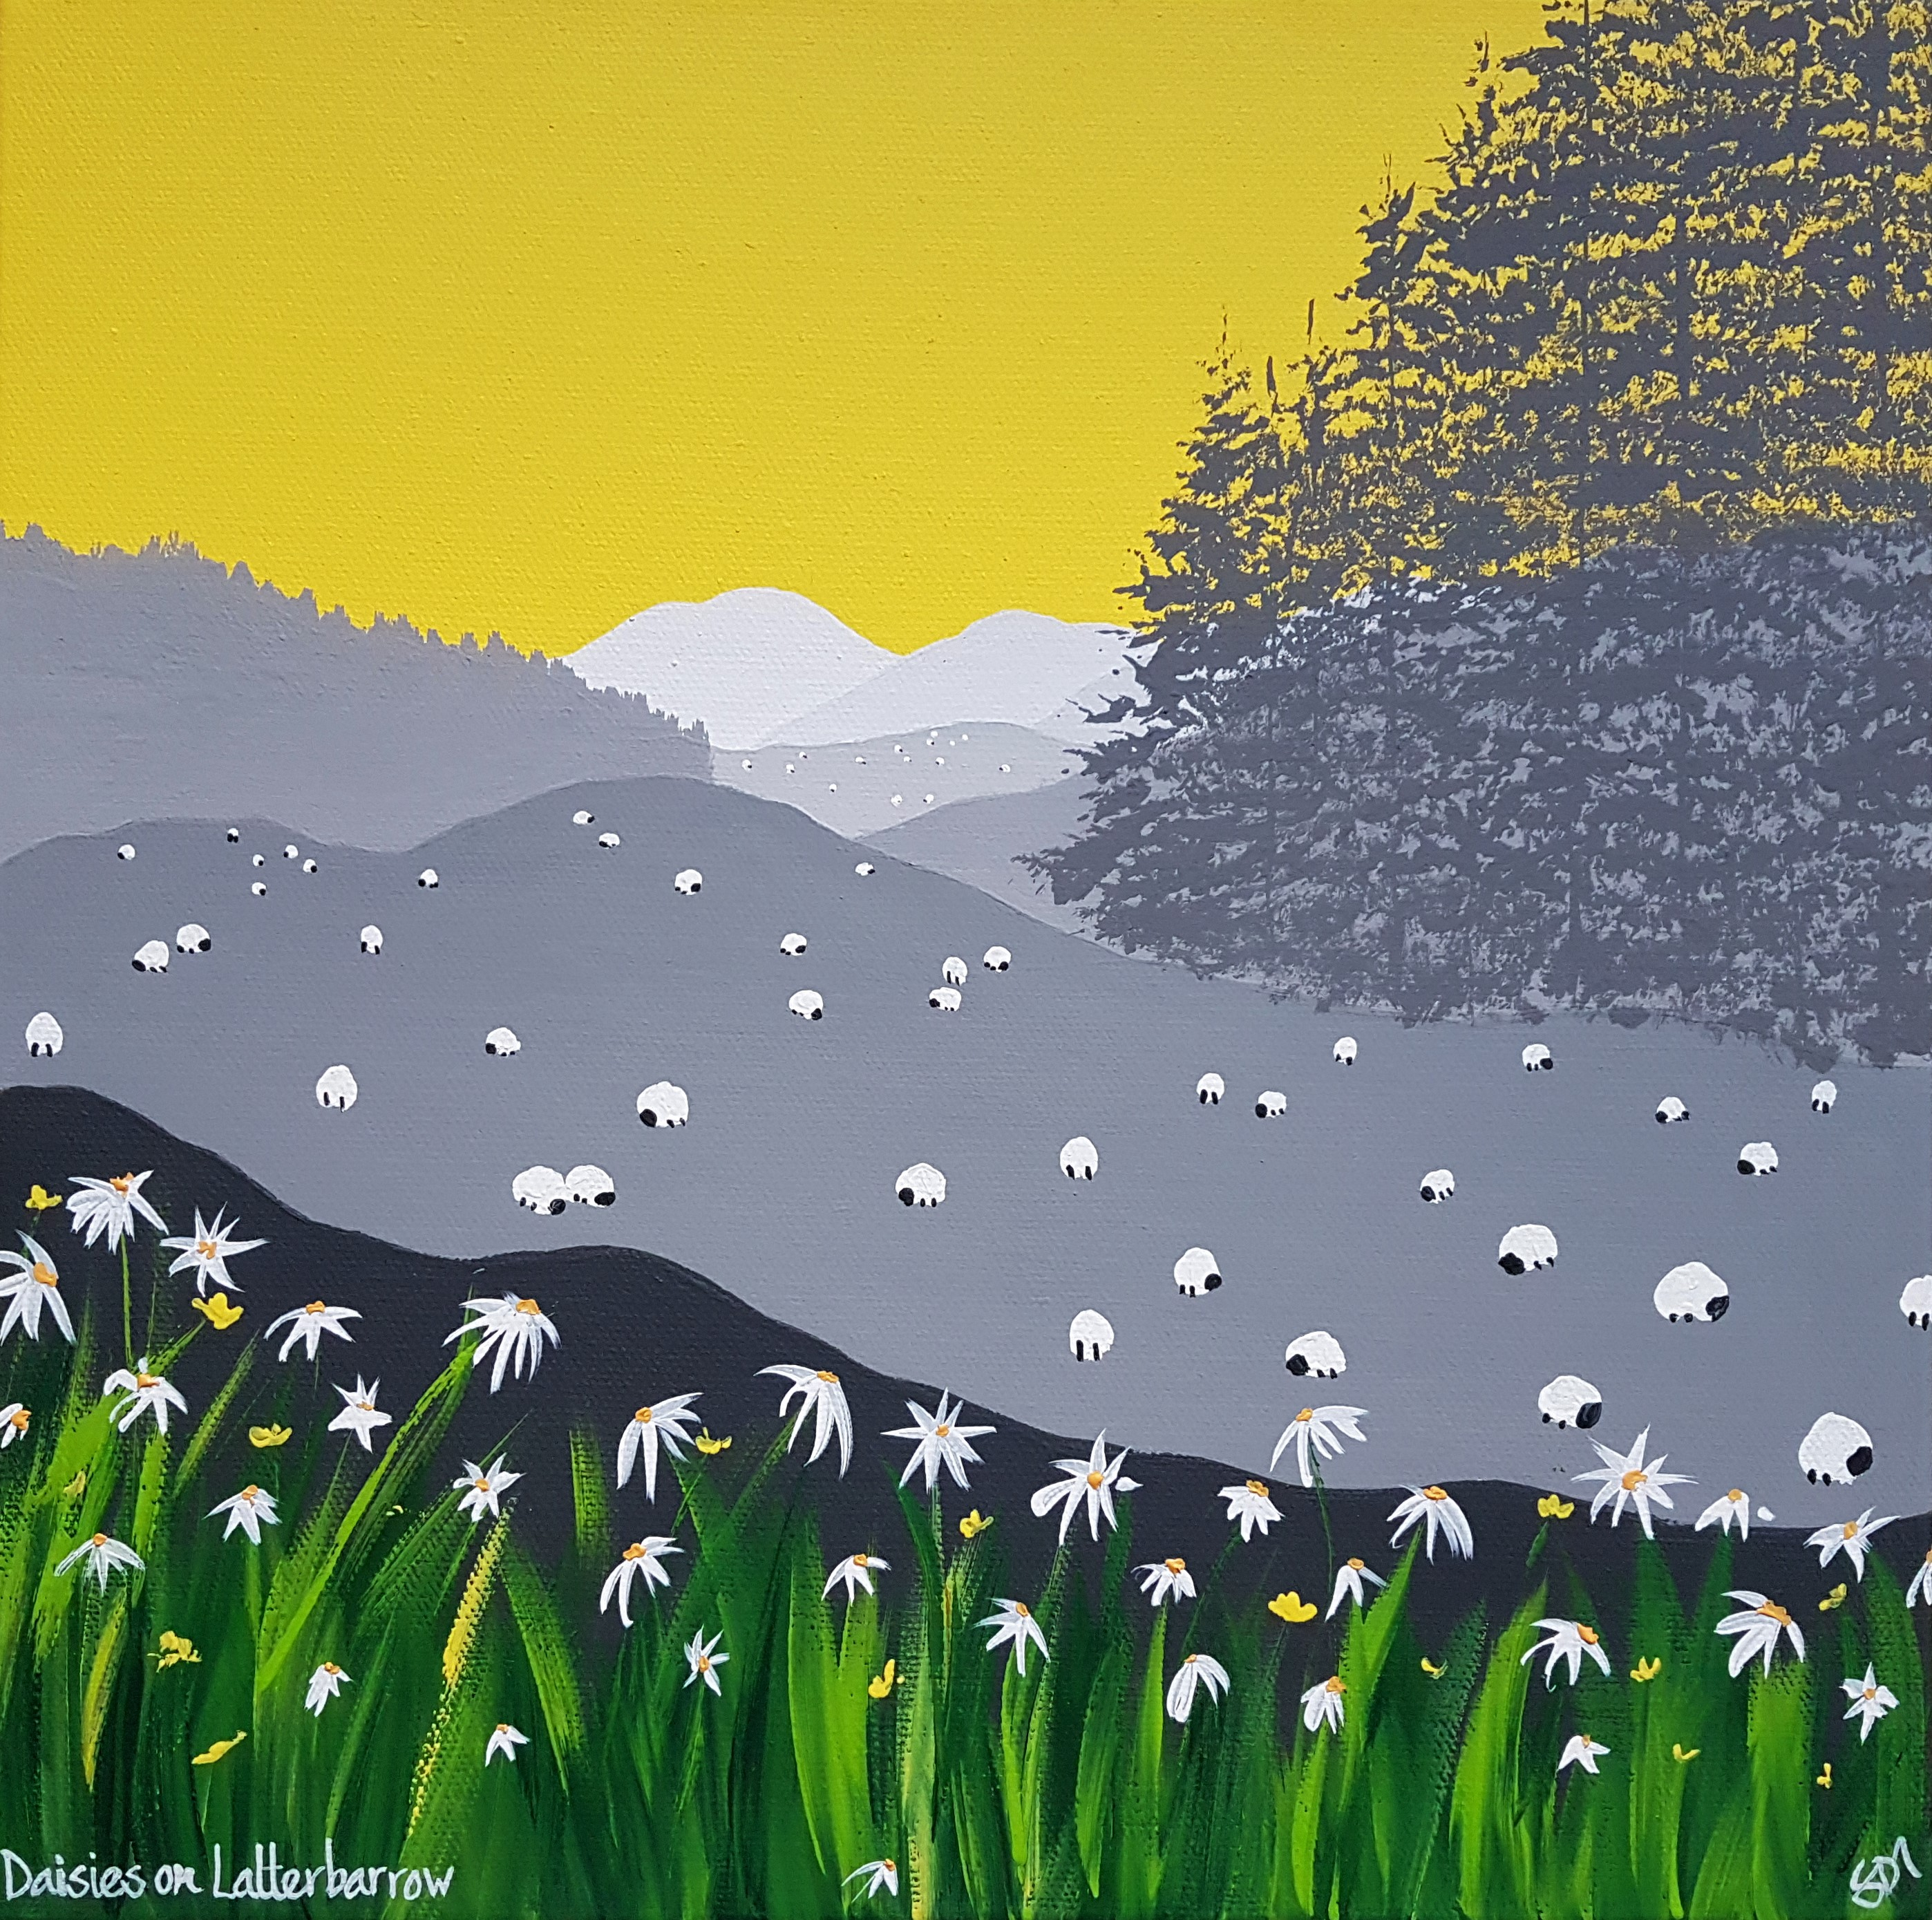 SOLD Daisies on Latterbarrow